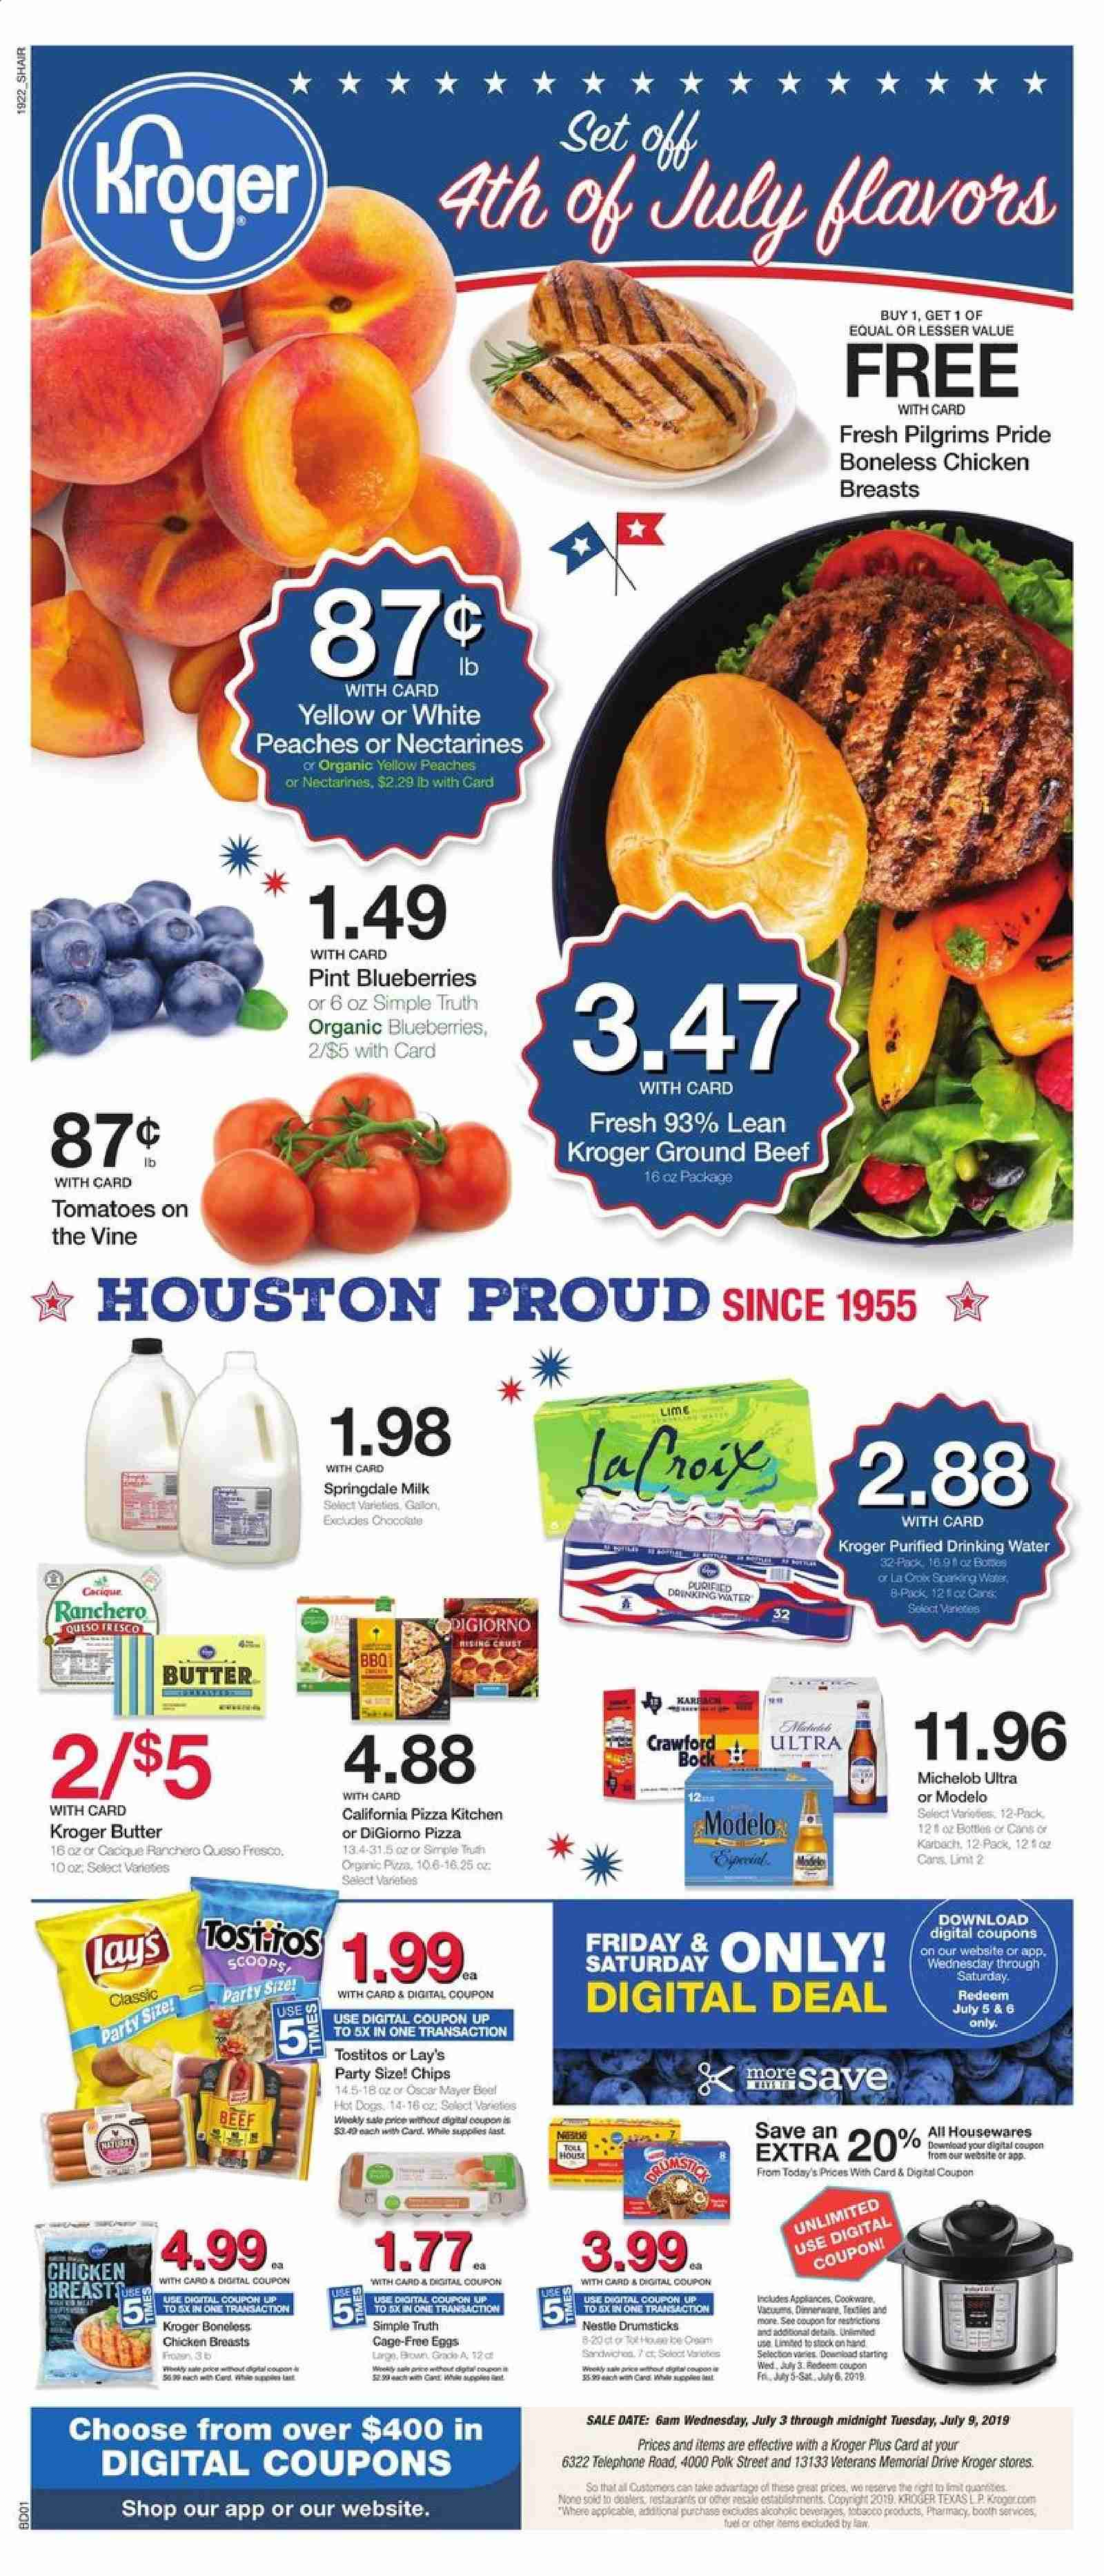 Kroger Flyer - 07.03.2019 - 07.09.2019 - Sales products - Michelob, tomatoes, blueberries, nectarines, peache, pizza, queso fresco, milk, eggs, butter, Nestlé, chocolate, chips, Lay's, water, chicken, chicken breast, beef meat, ground beef, dinnerware set, fuel. Page 1.